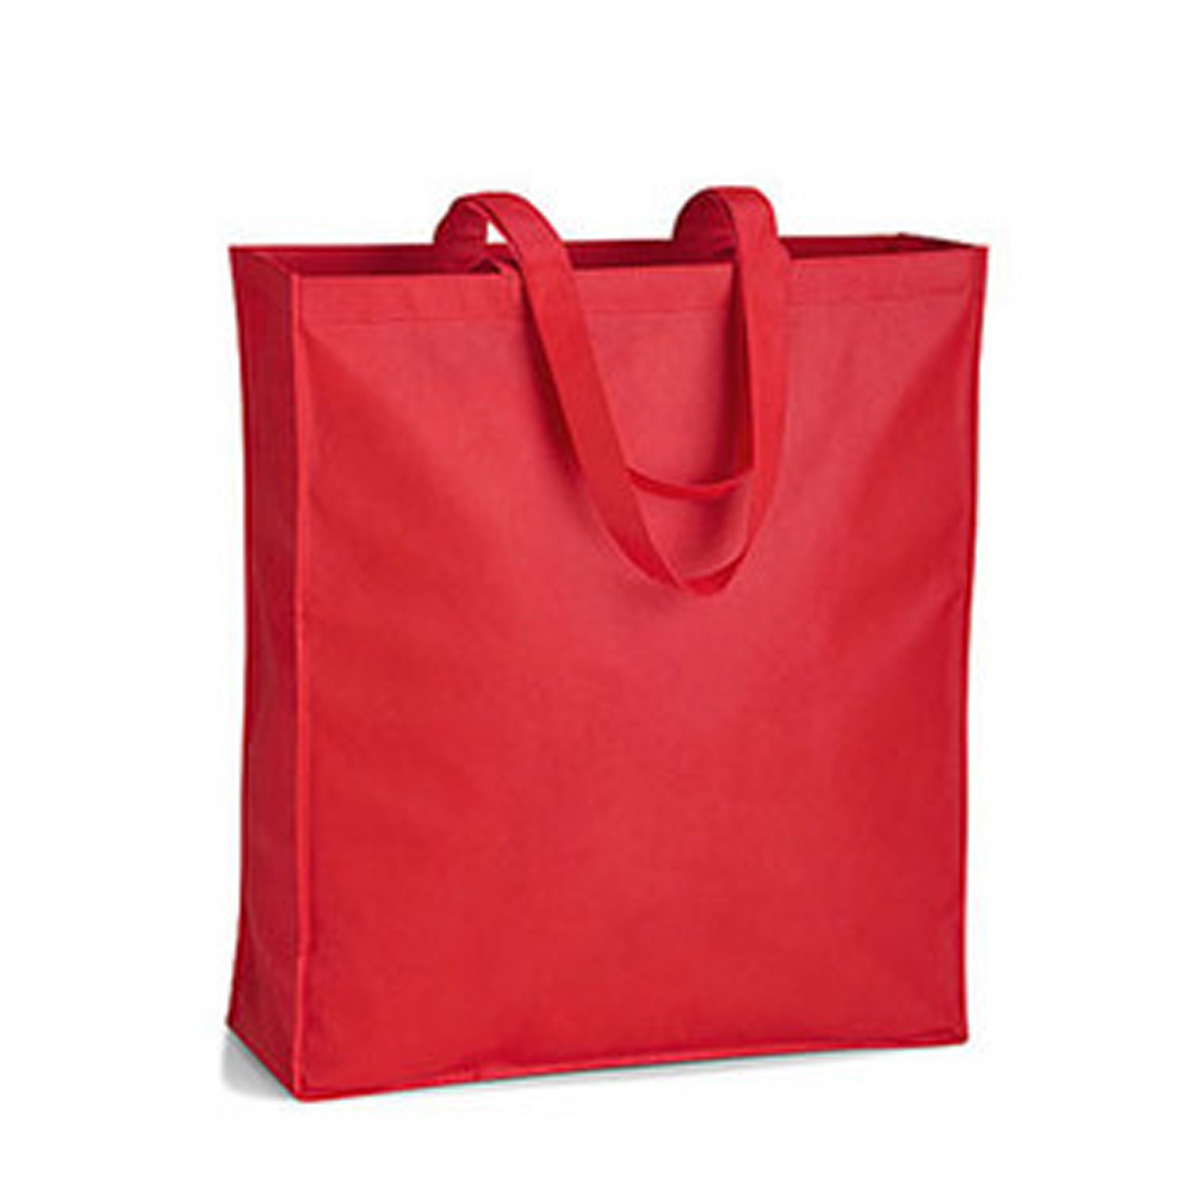 reusable bags Chicobag specializes in offering compact reusable bags and lifestyle totes that are fashionable, environmentally friendly and designed to be unforgettable.